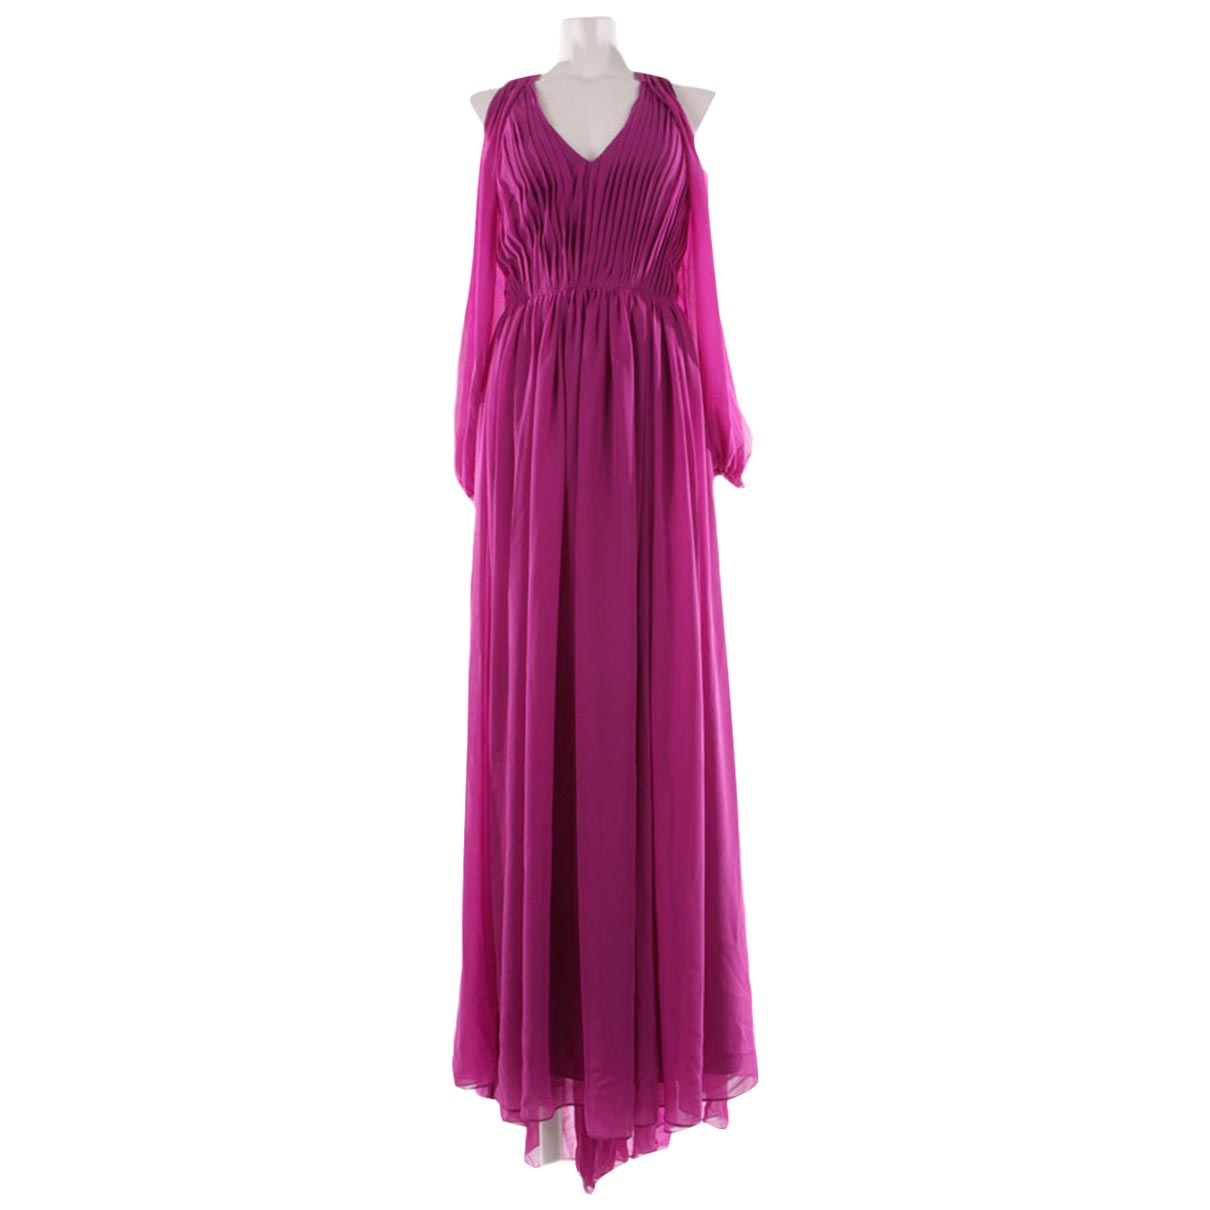 Autre Marque \N Purple Linen dress for Women 36 FR